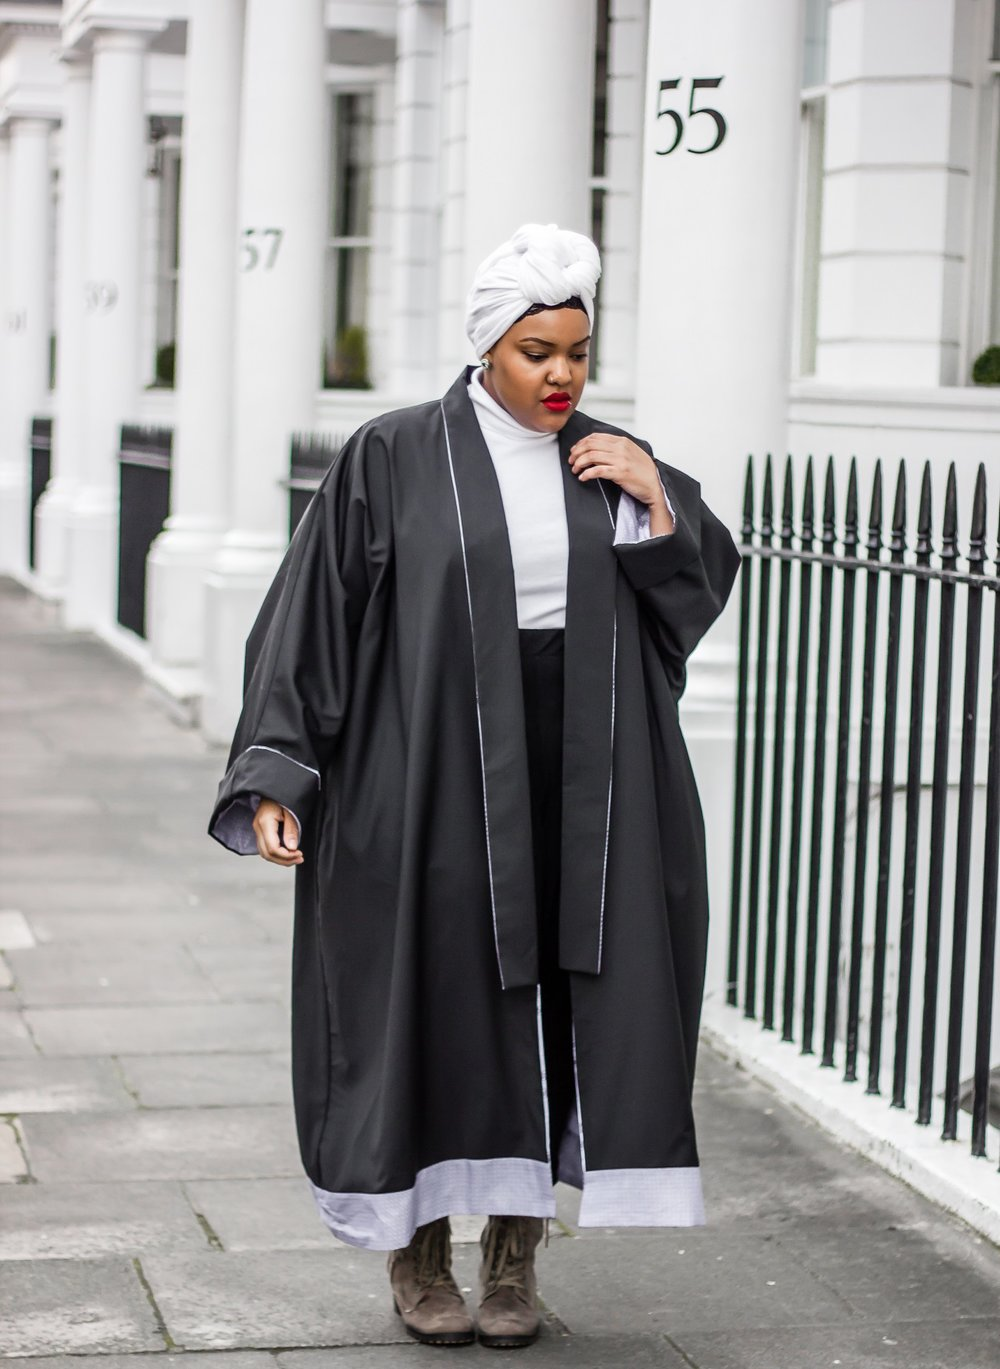 Leah-Vernon-Buno-Designs-Plus-Size-Style-Blogger-London-Muslim-Girl.jpg